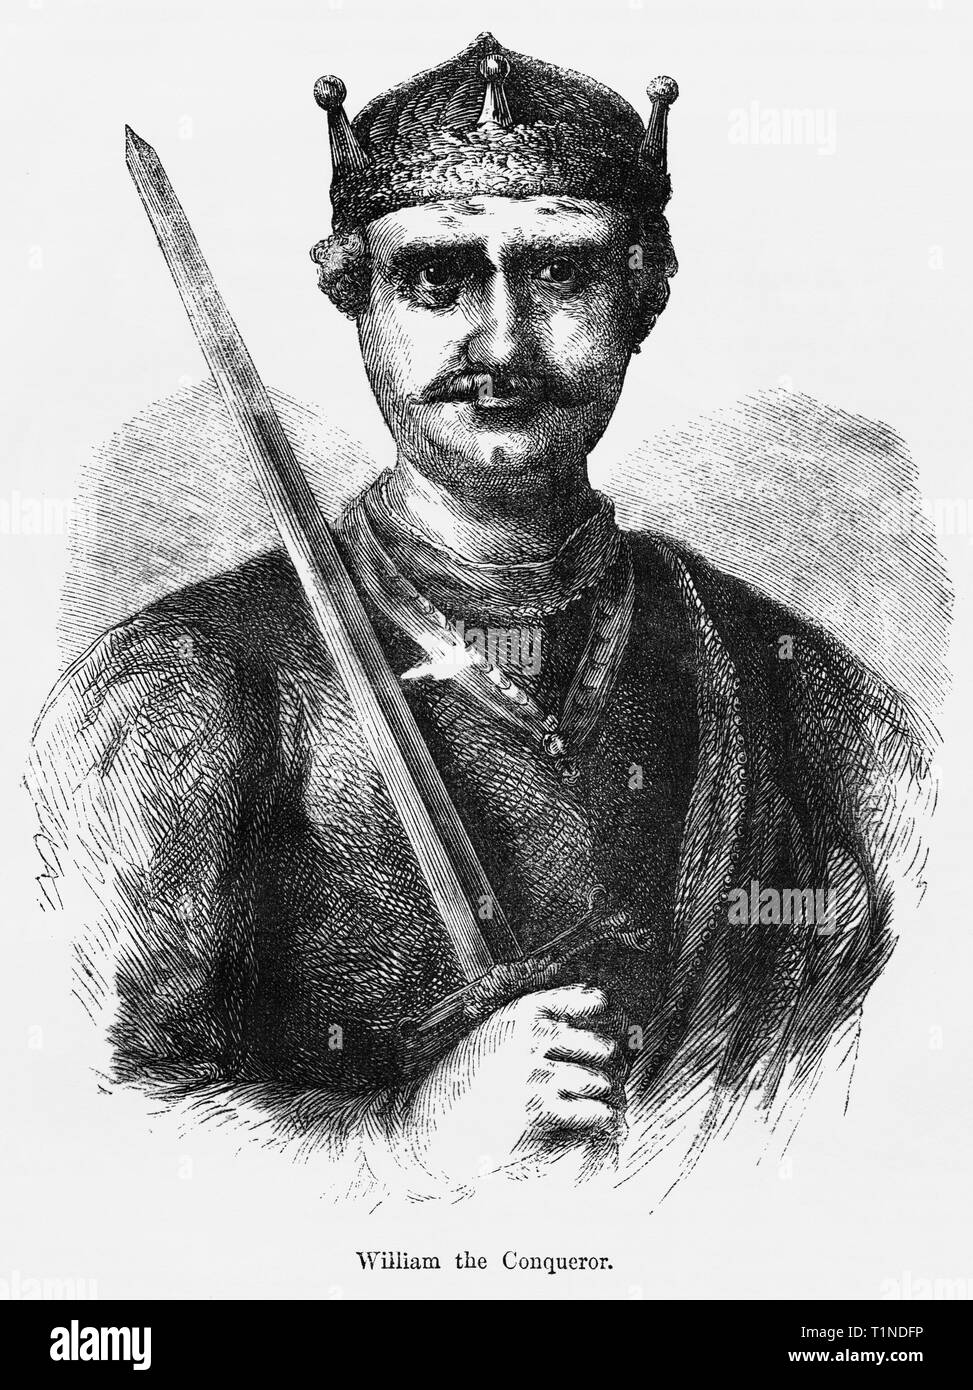 William the Conqueror, Illustration from John Cassell's Illustrated History of England, Vol. I from the earliest period to the reign of Edward the Fourth, Cassell, Petter and Galpin, 1857 Stock Photo